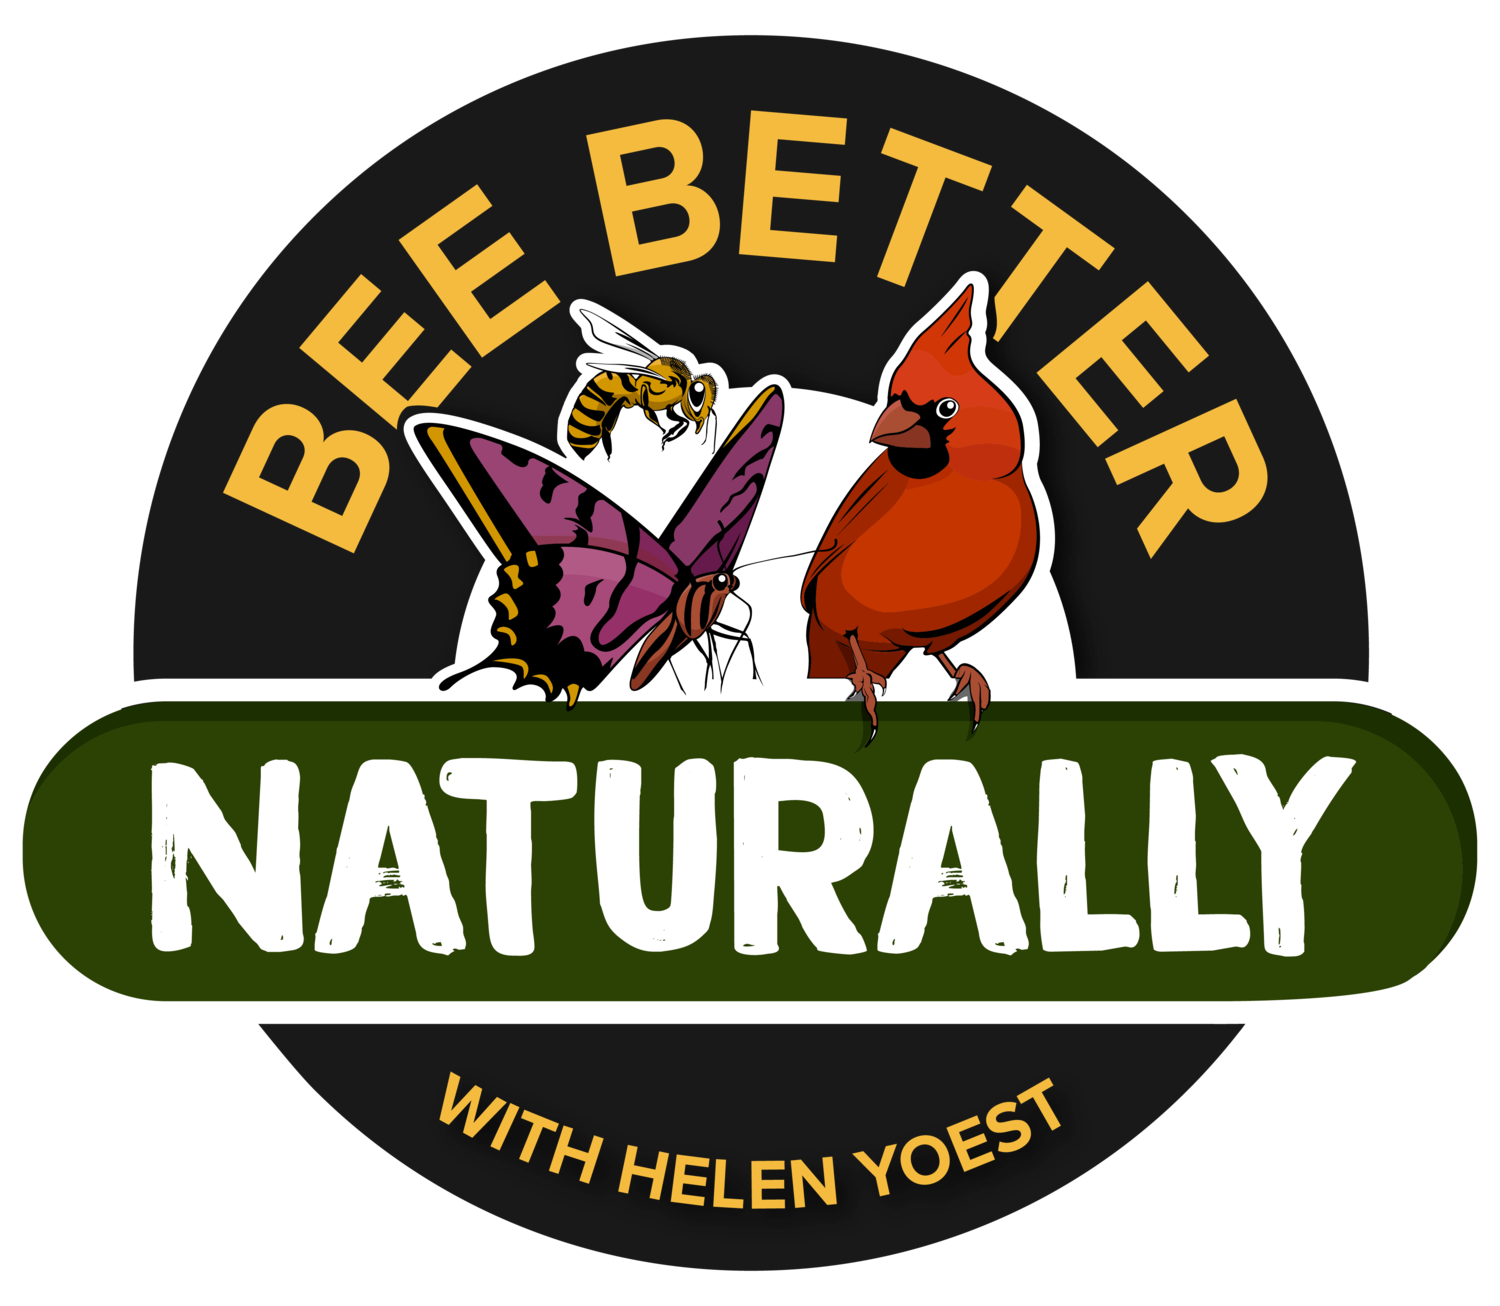 Bee Better Naturally with Helen Yoest